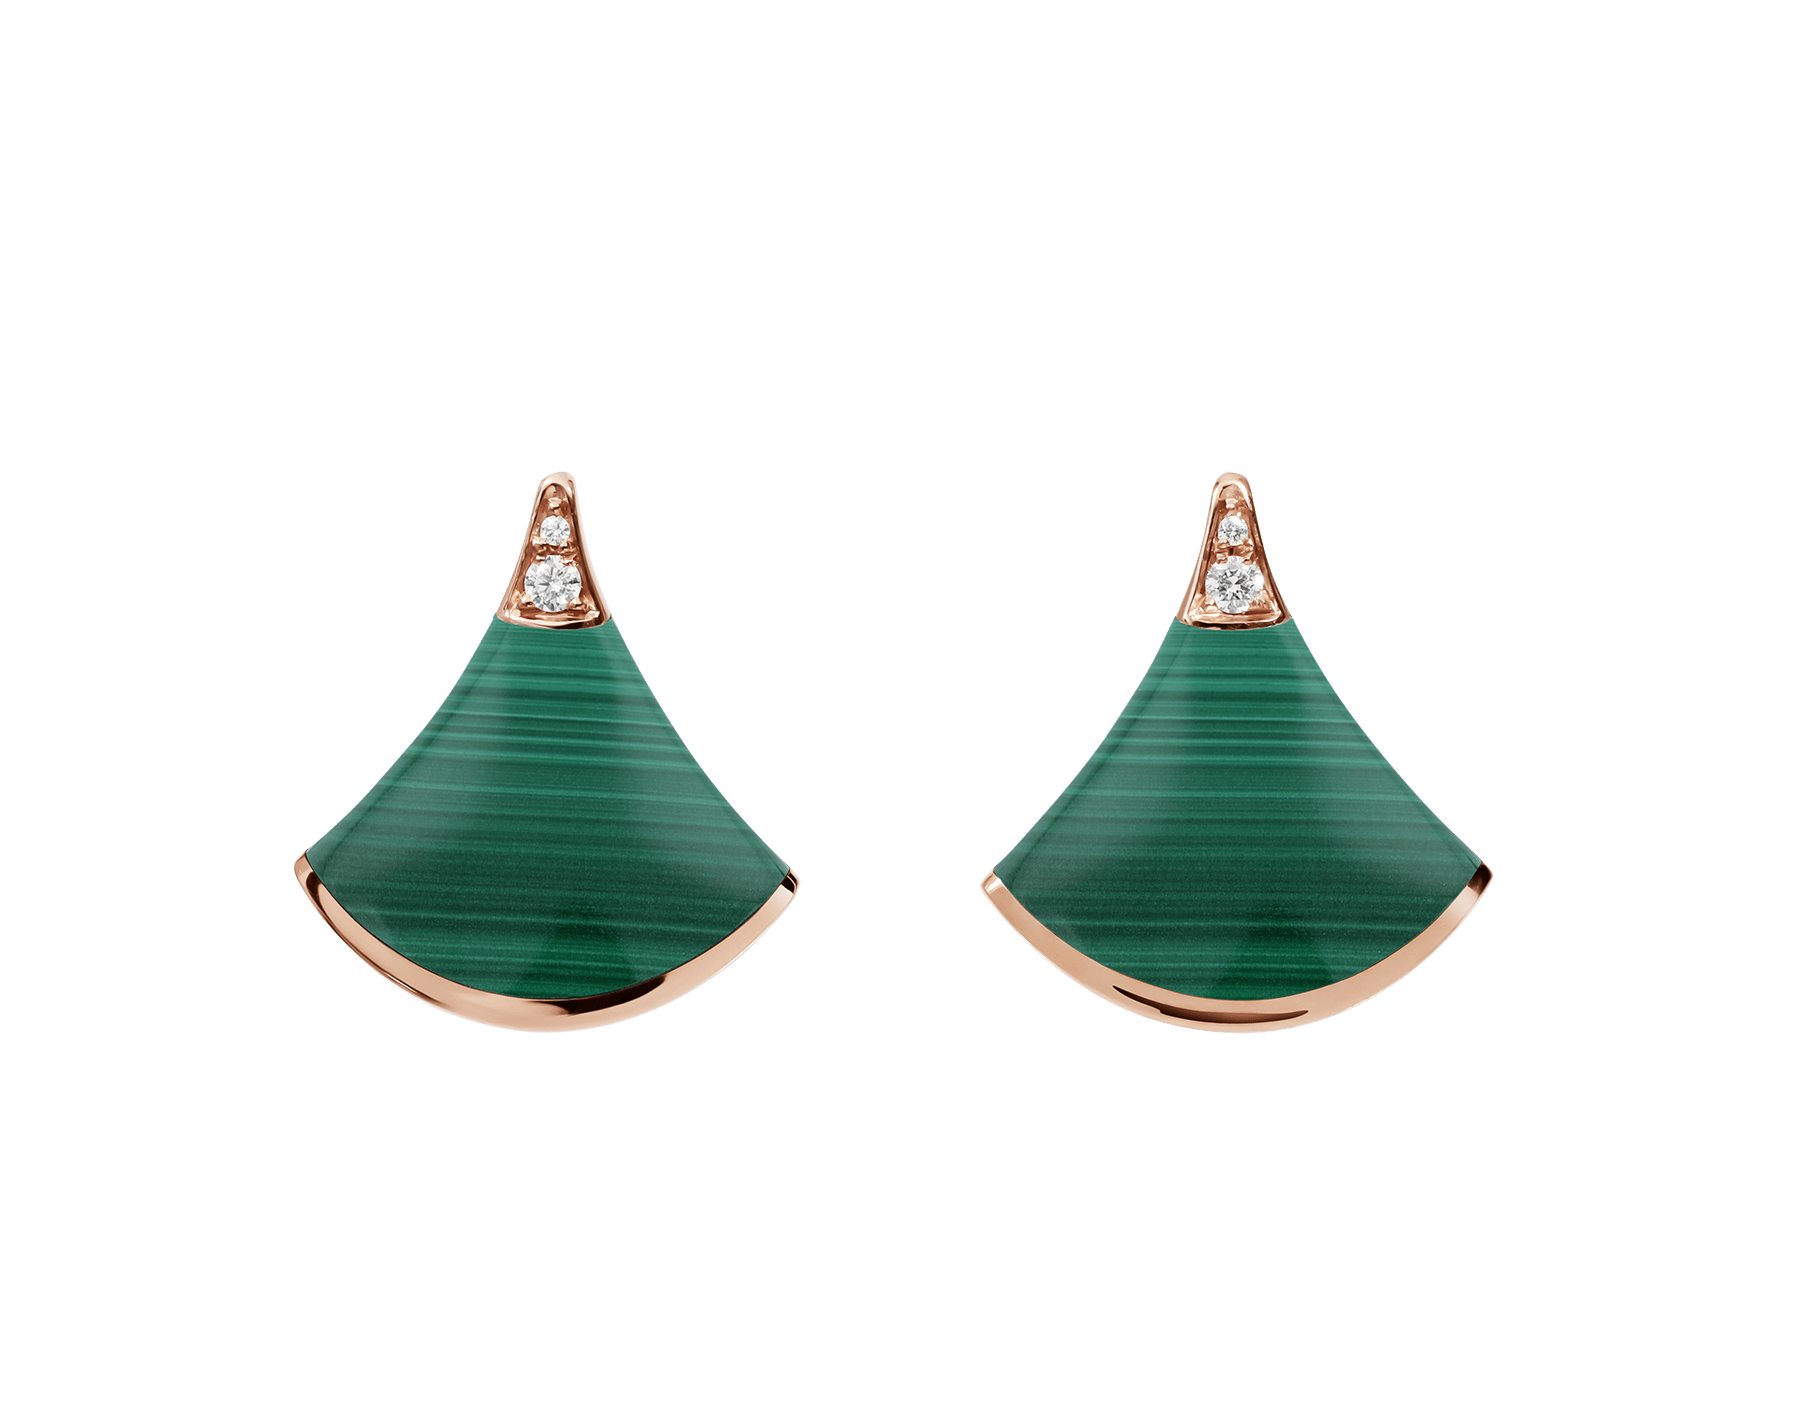 Boucles d'oreilles DIVAS' DREAM en or rose 18 K serties d'éléments en malachite et pavé diamants (0,03 ct) 355794 image 1